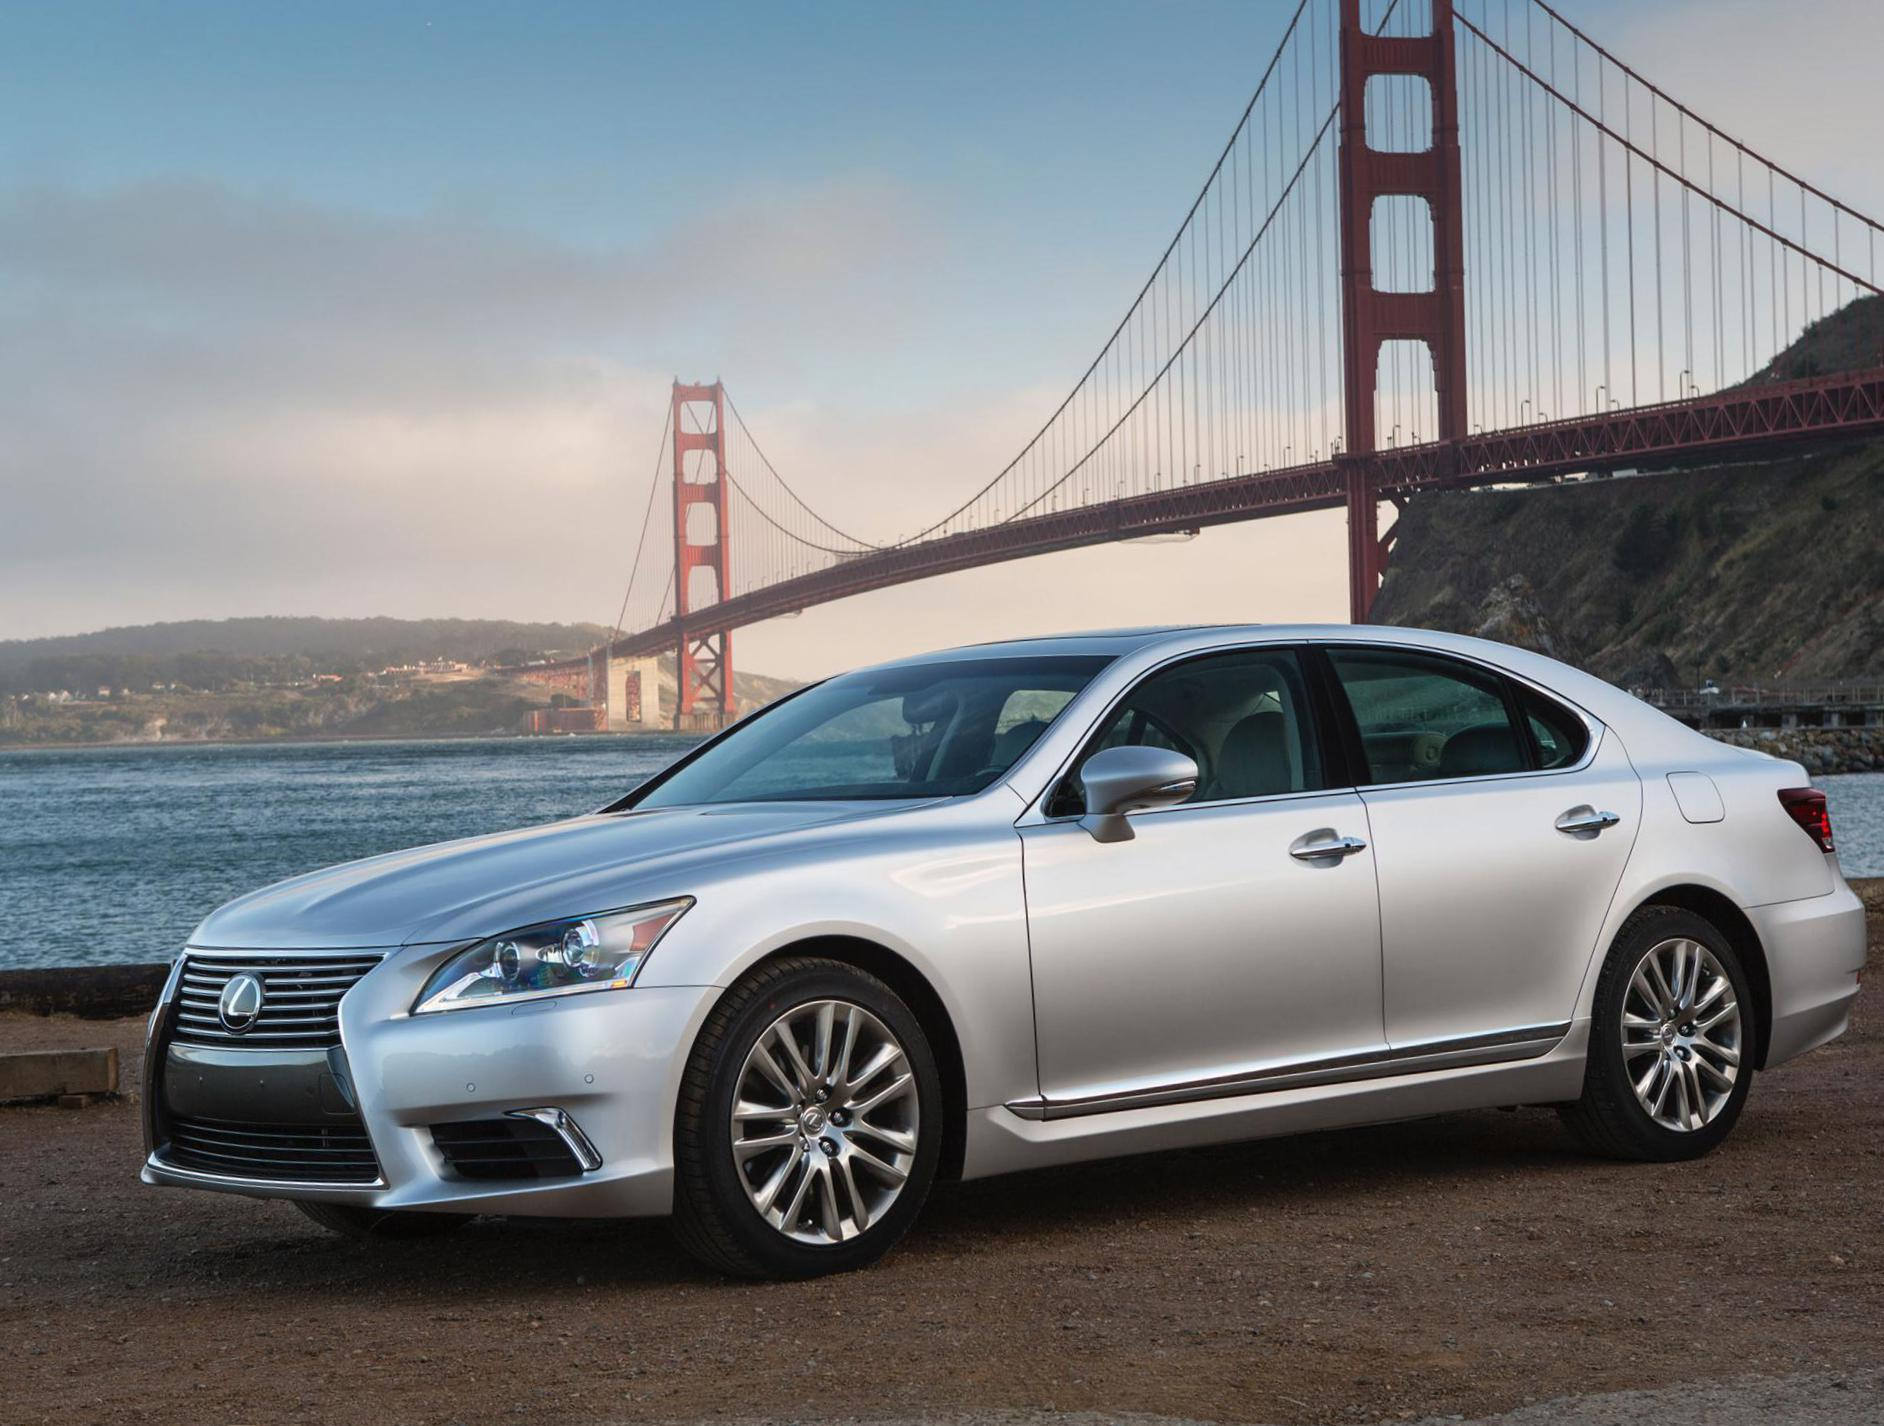 Lexus LS 460 approved 2012